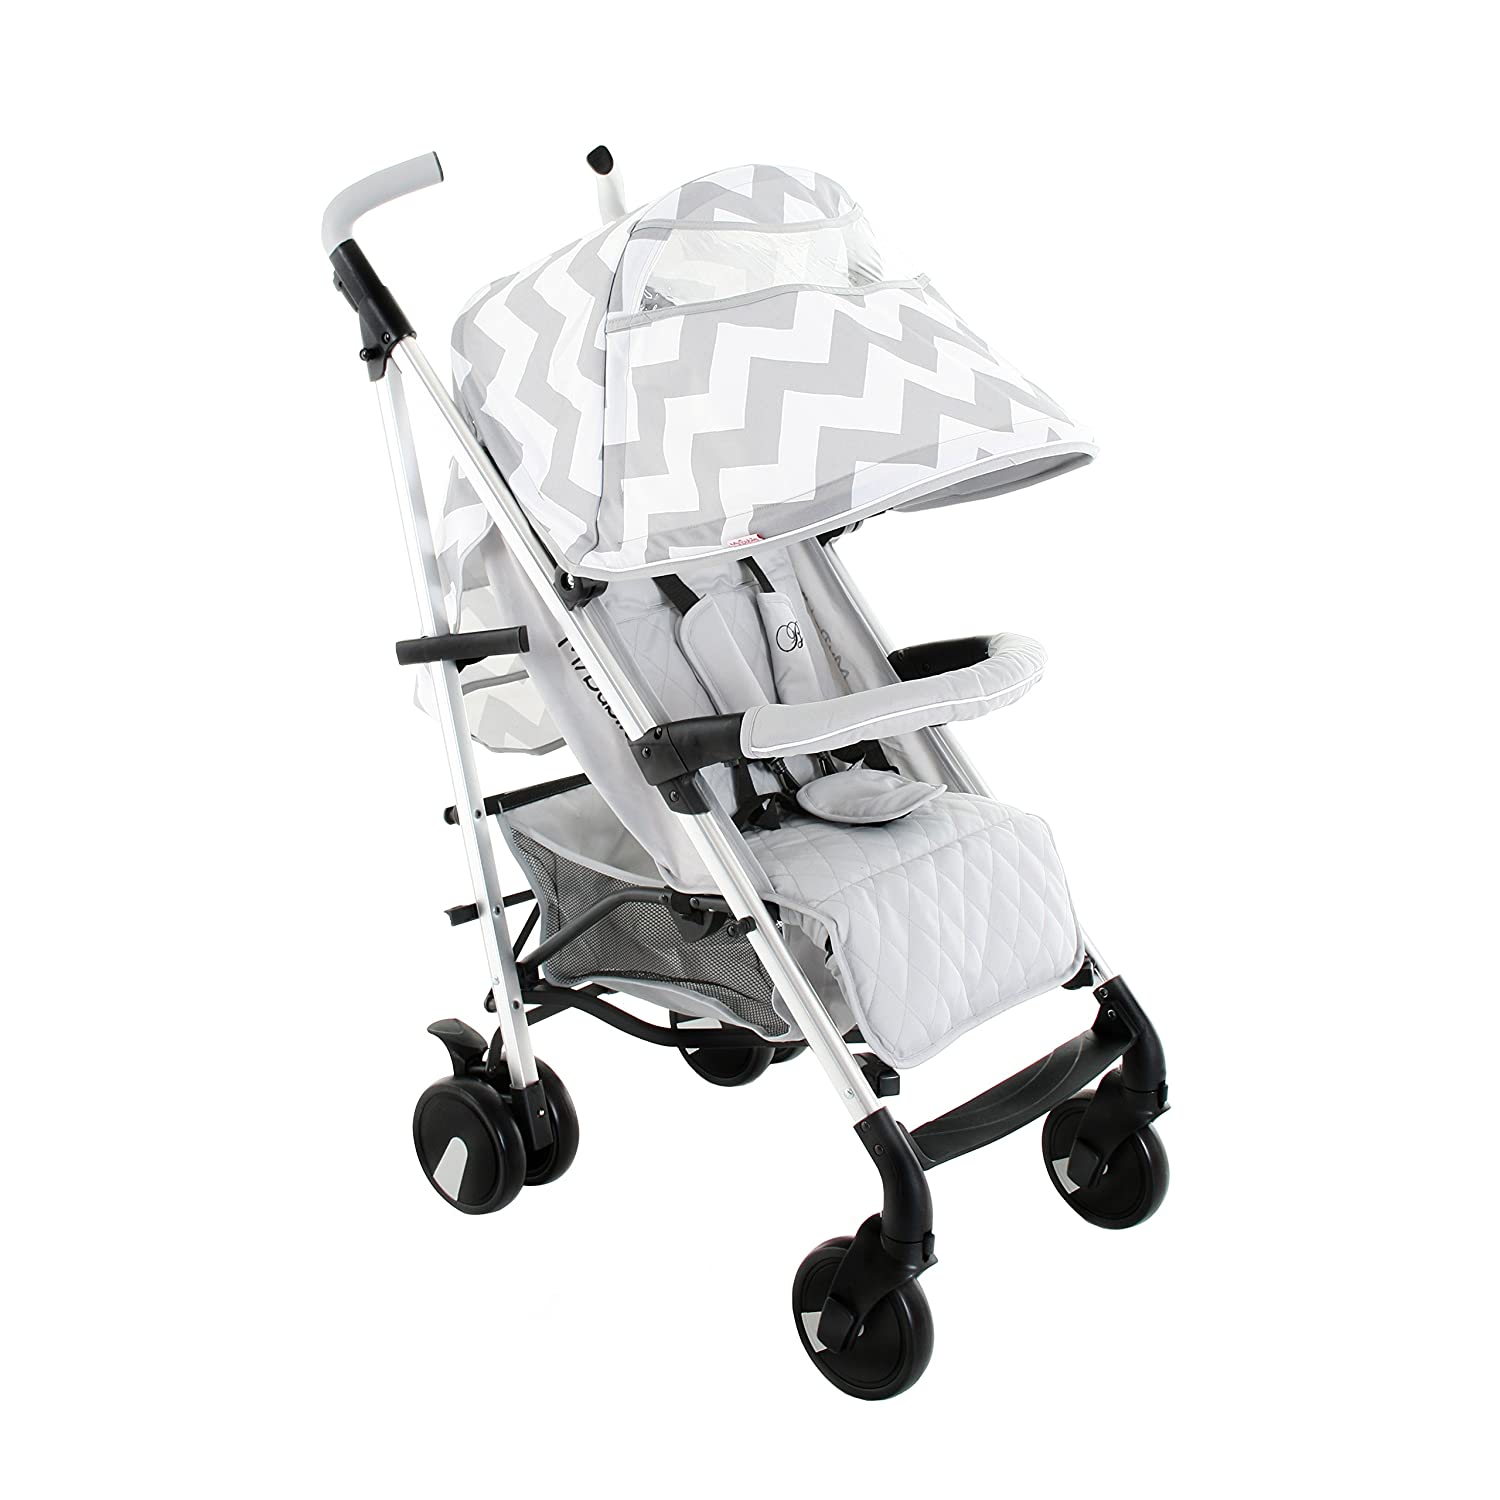 My Babiie Billie Faiers Signature Light weight Stroller